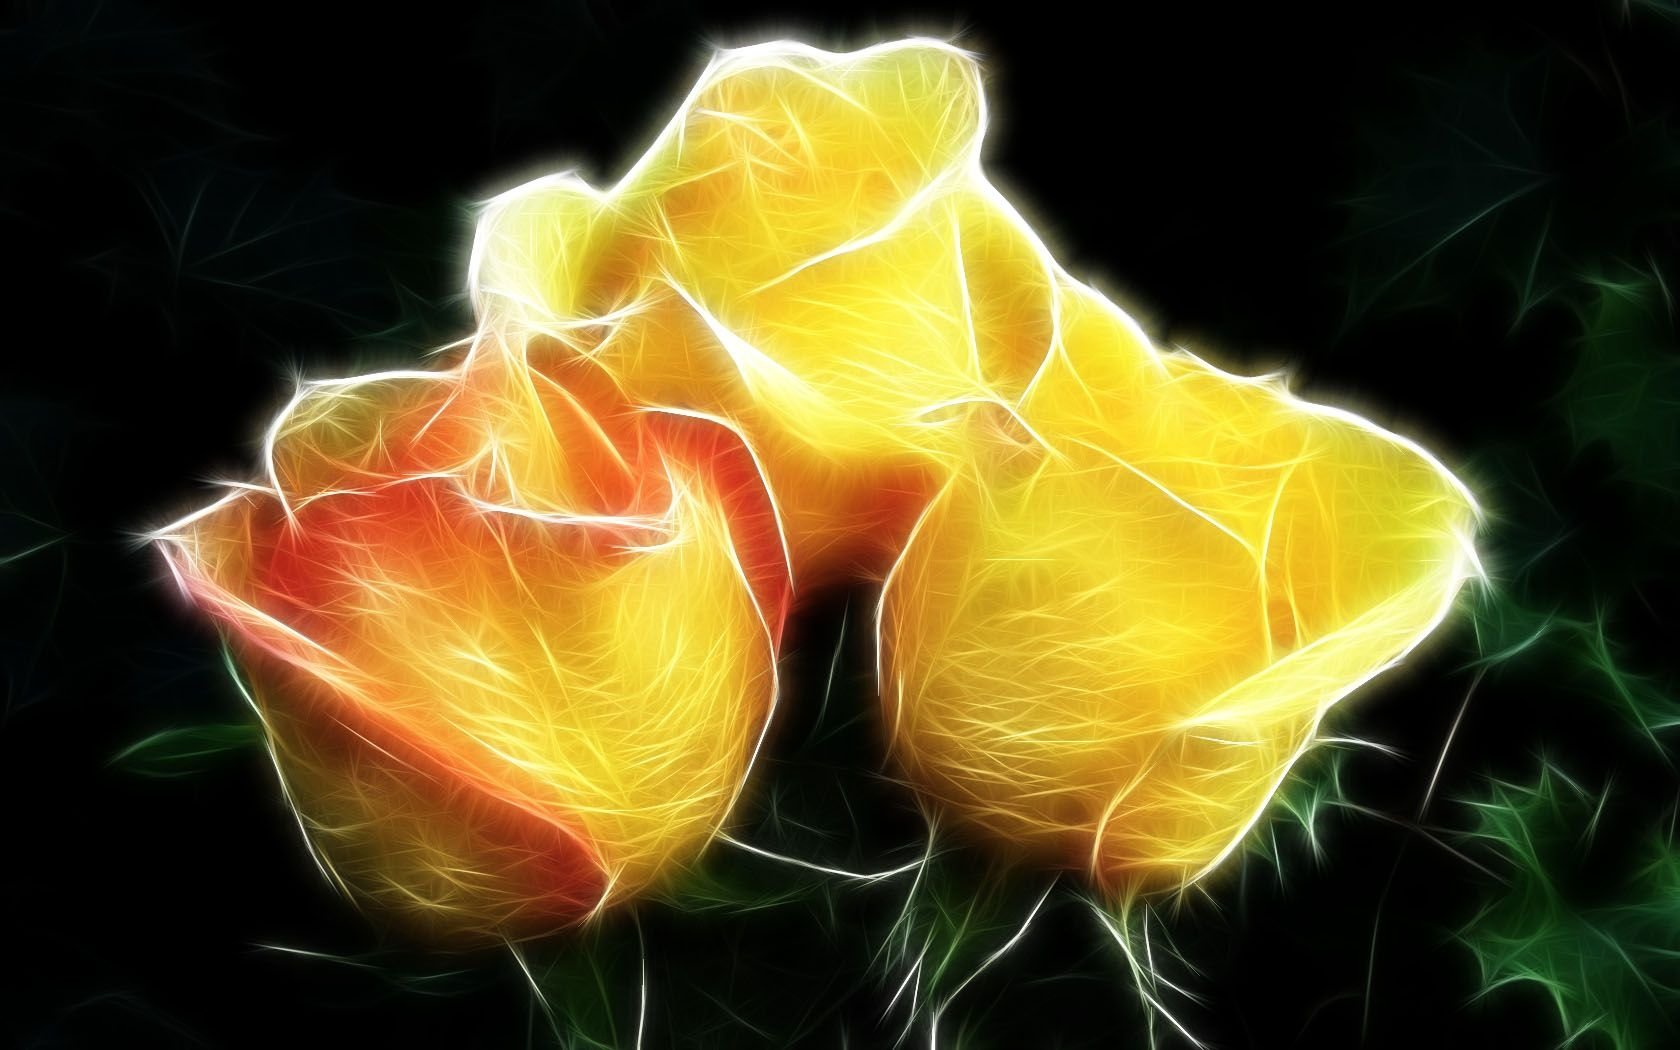 Hd wallpaper yellow rose - Hd Wallpaper Background Id 88972